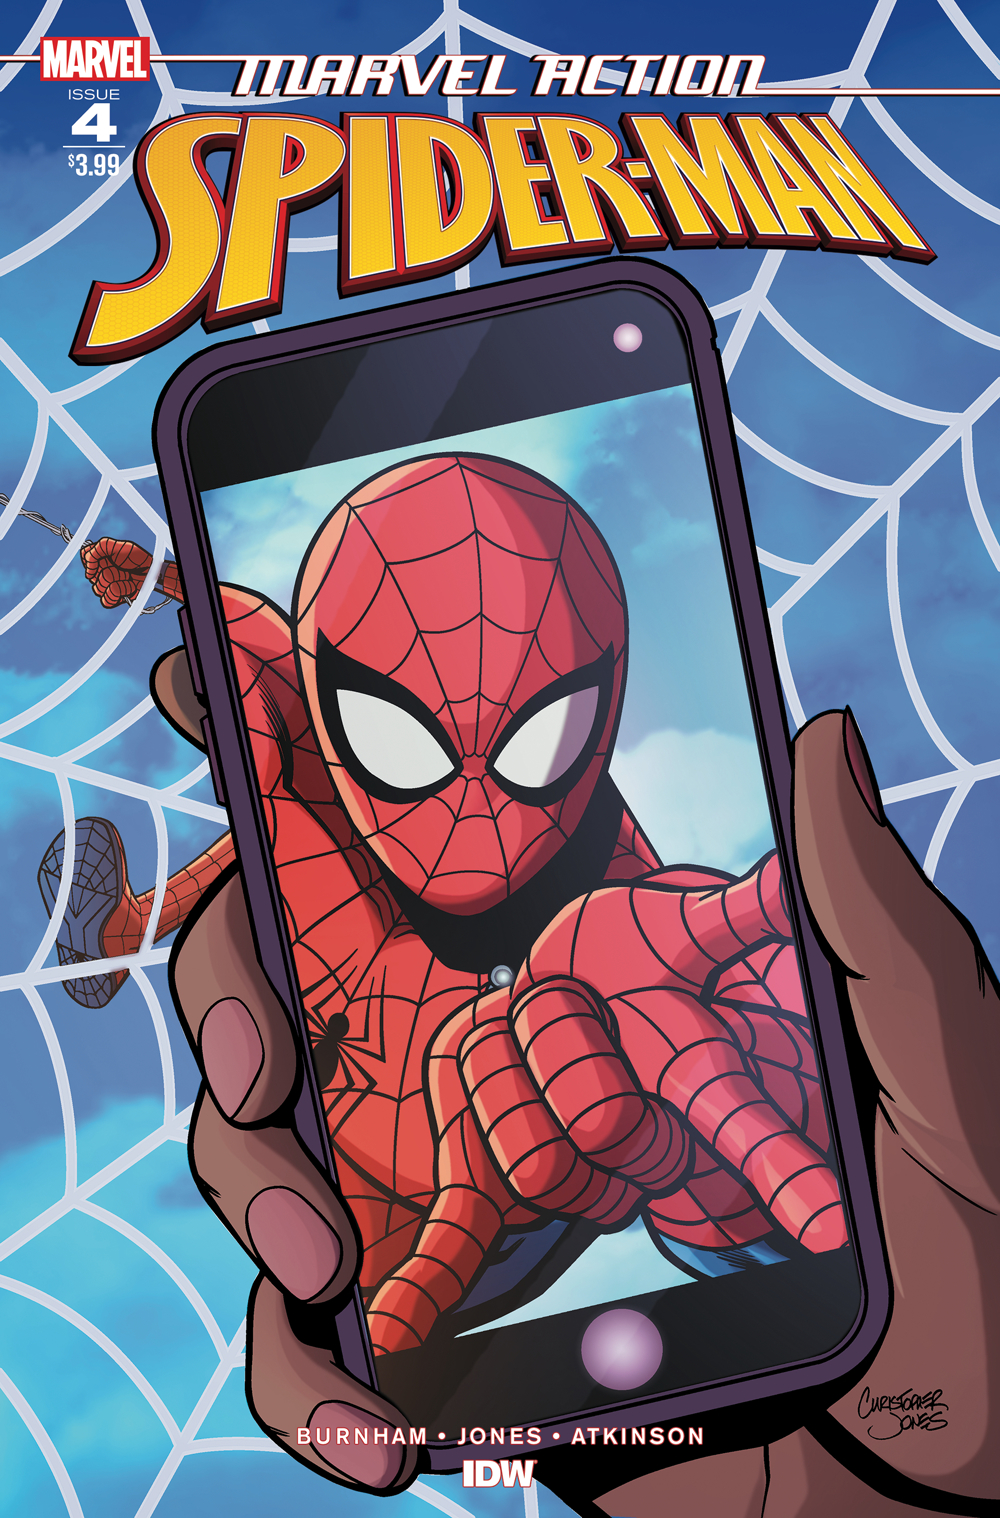 MARVEL ACTION SPIDER-MAN #4 JONES